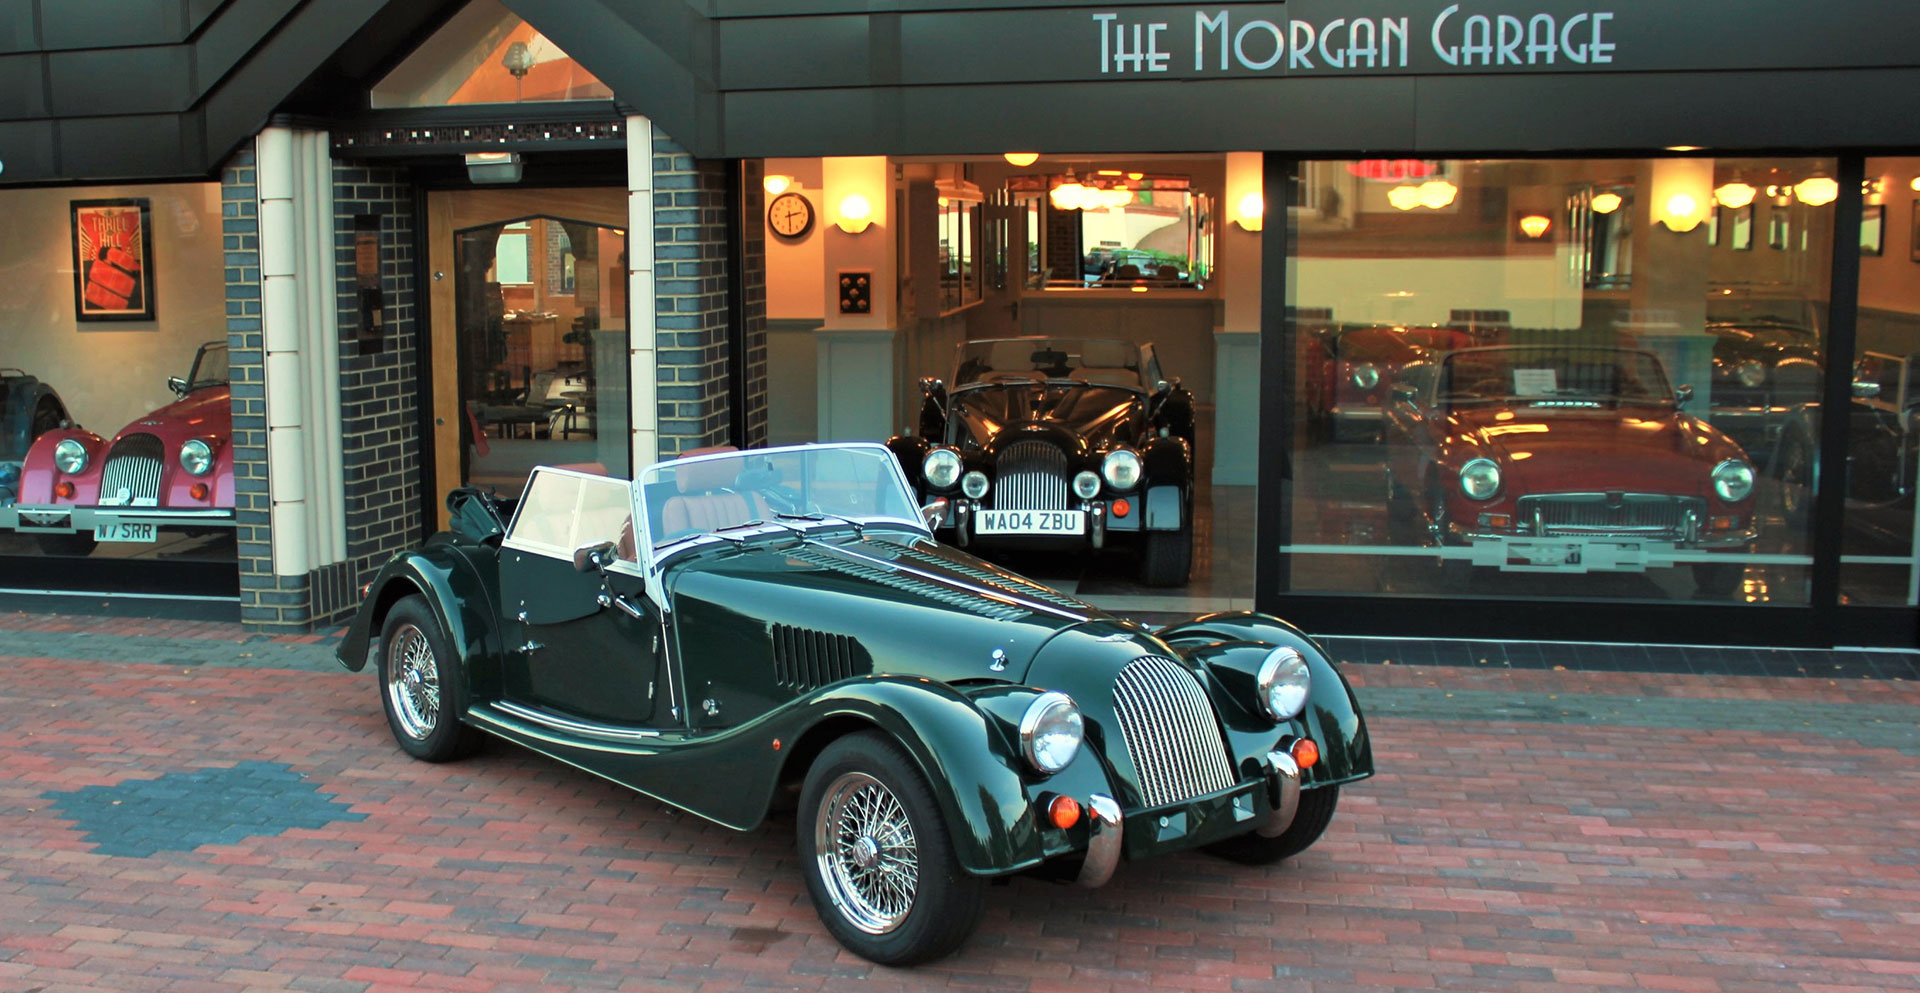 morgan cars for sale from melvyn rutter ltd morgan main dealer. Black Bedroom Furniture Sets. Home Design Ideas